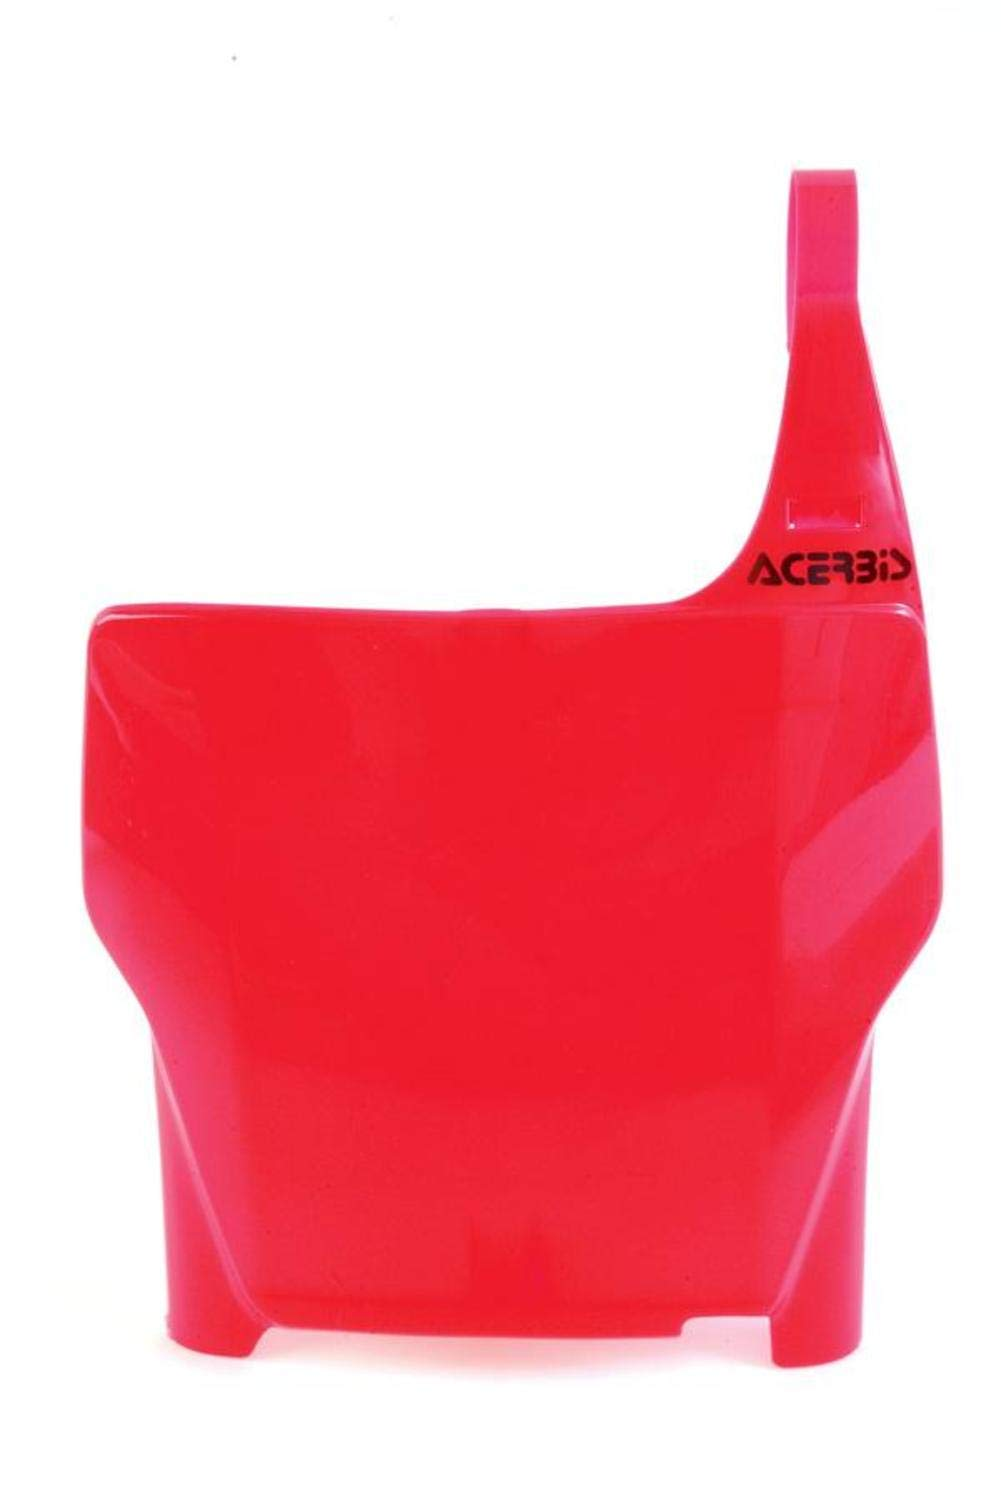 Acerbis 2141850227 Red Front Number Plate